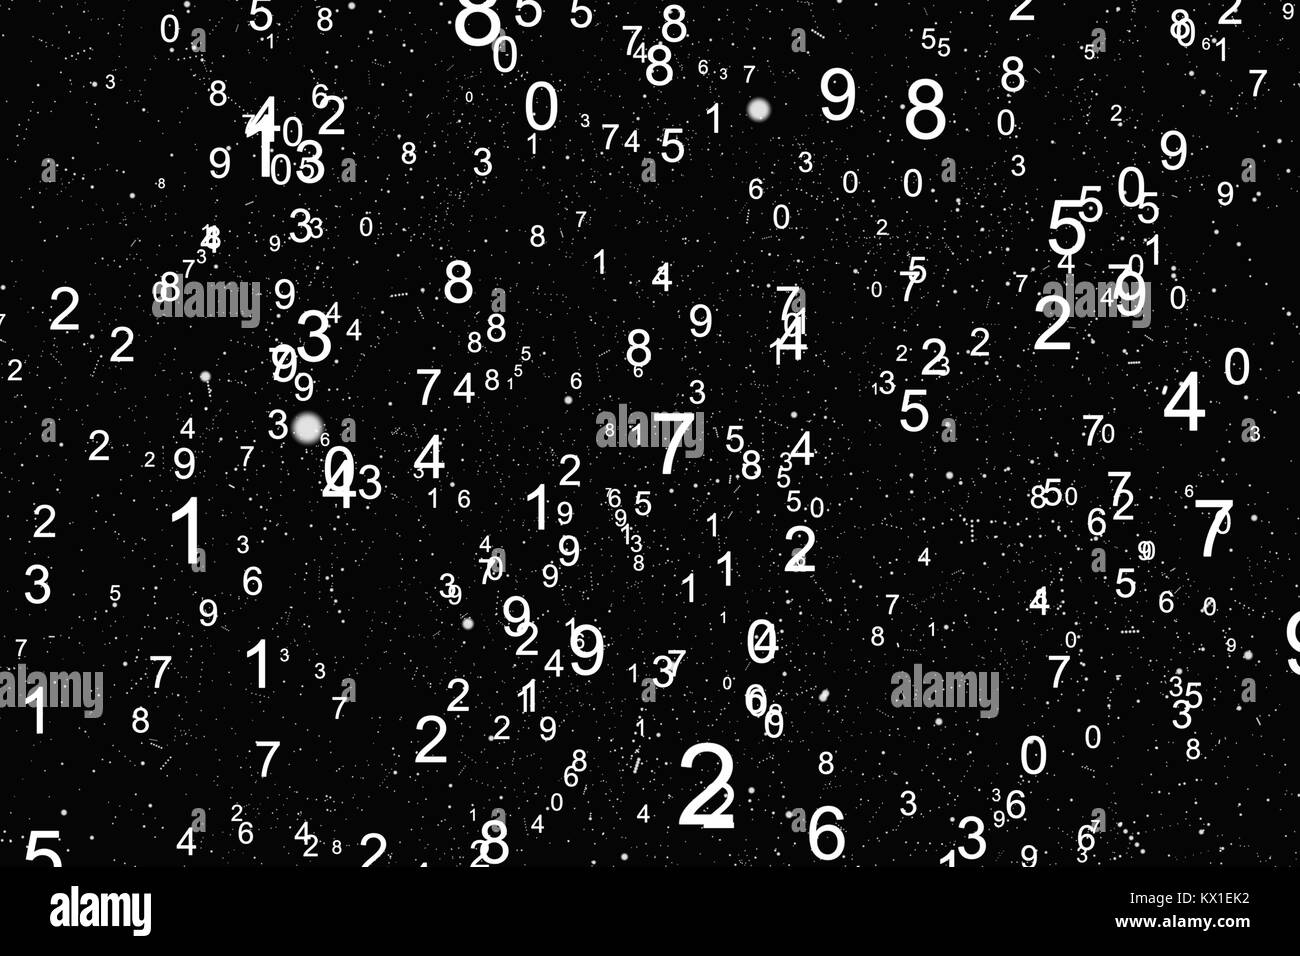 Abstract math number background Stock Photo: 170907830 - Alamy